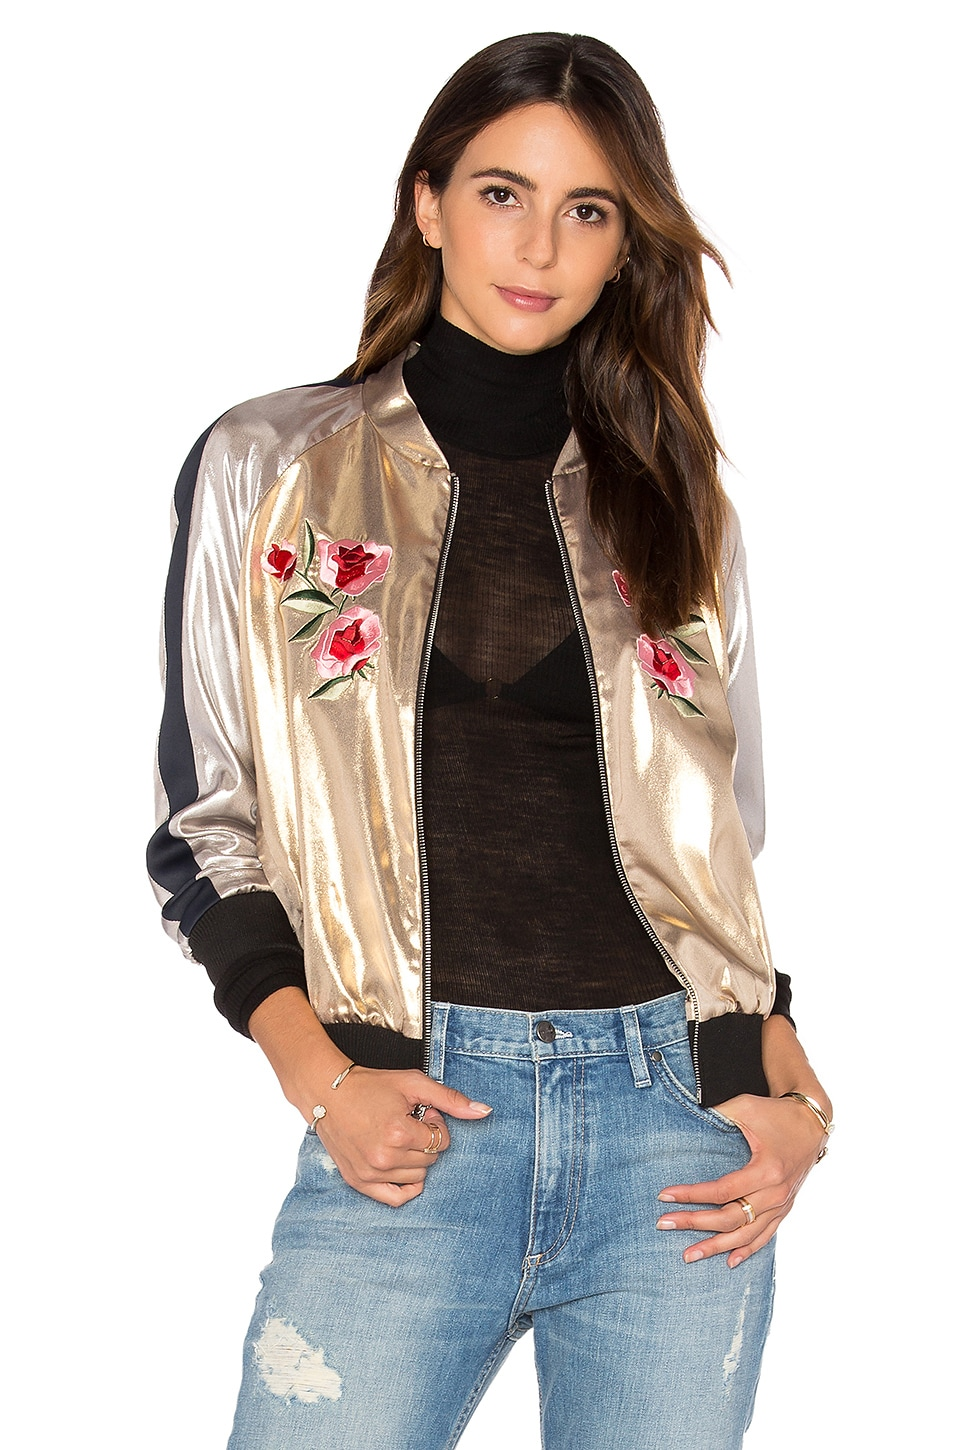 Embroidered Bomber Jacket by Frankie